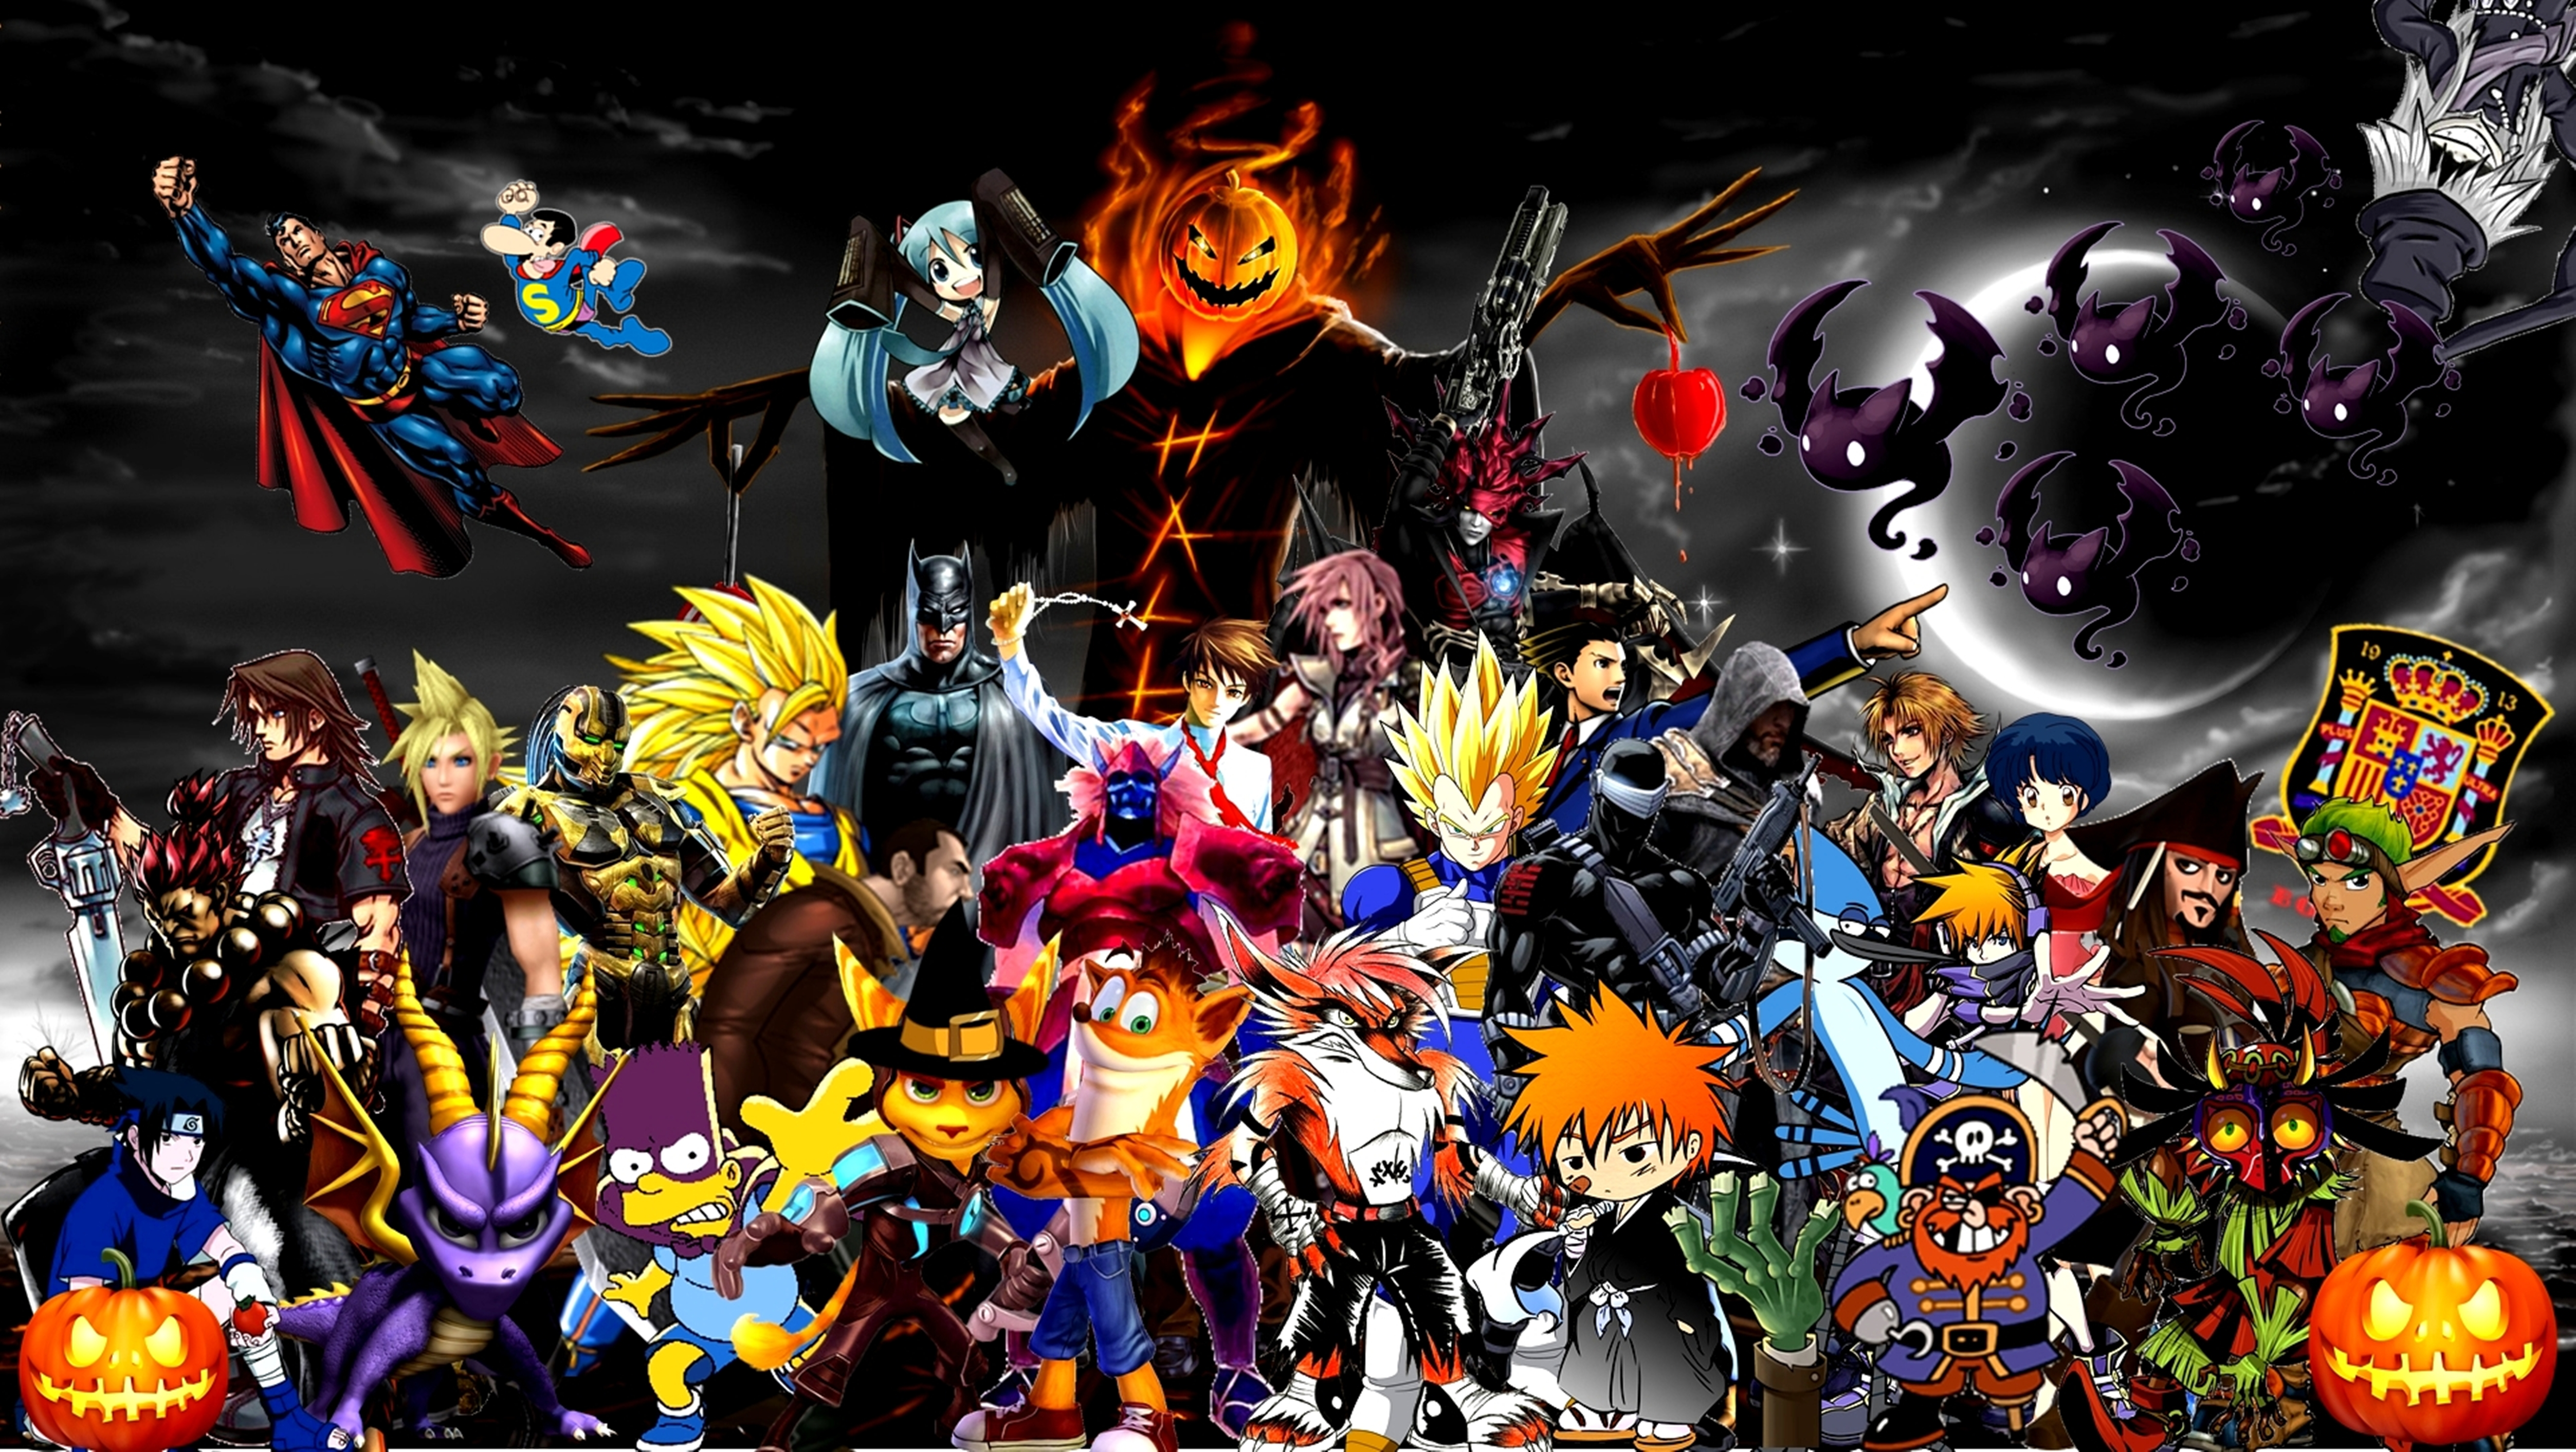 Halloween-wallpaper 03 Full-horz 5011 by charrytaker